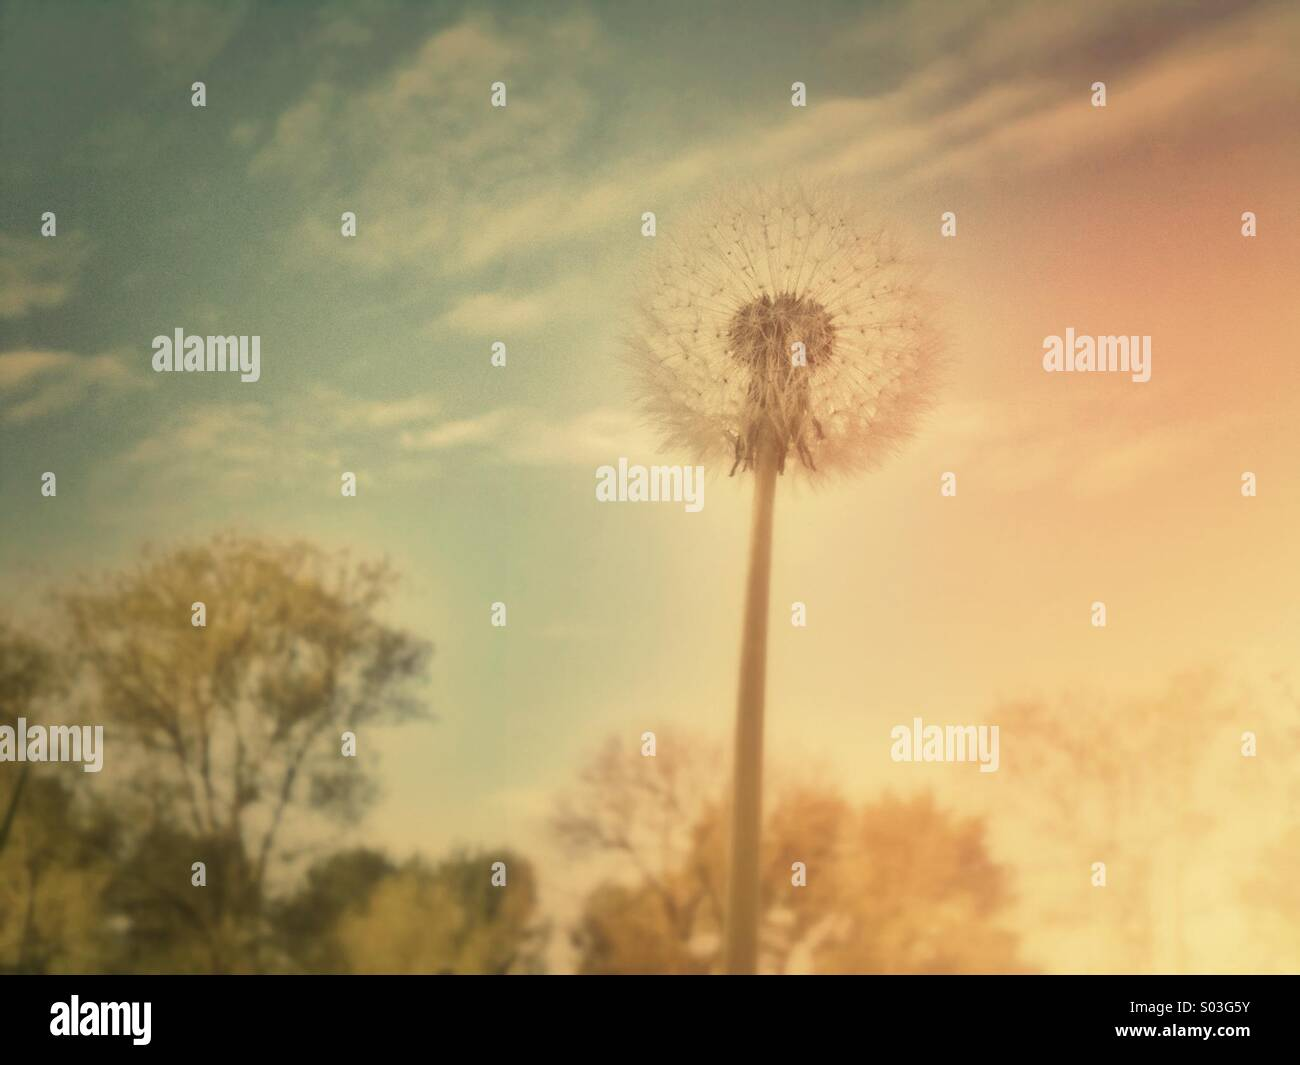 Dandelion seed head with retro-effect filter applied Stock Photo